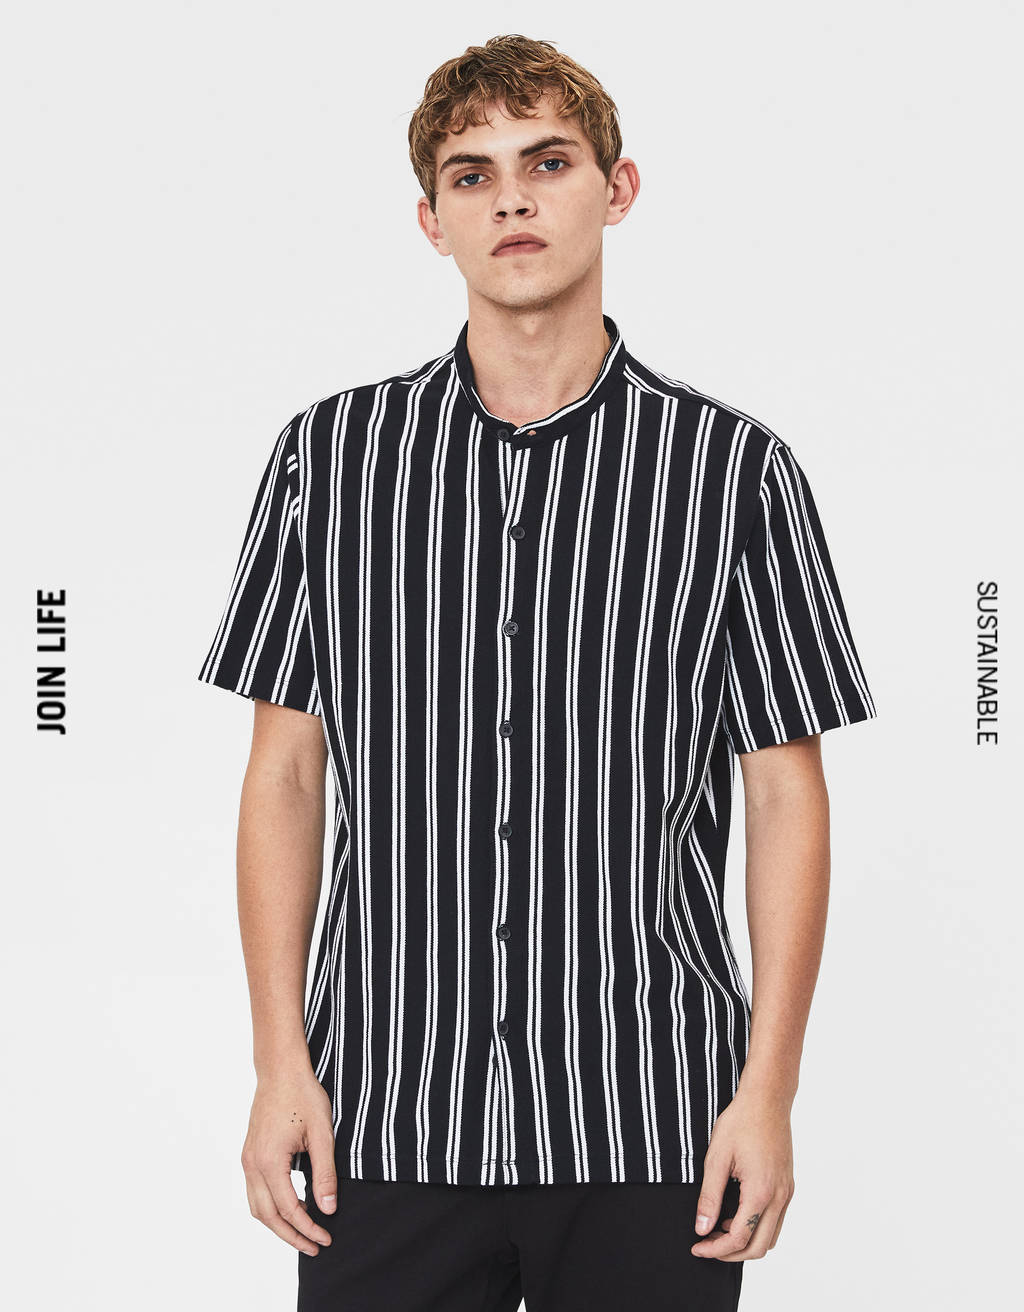 Striped stand-up collar shirt